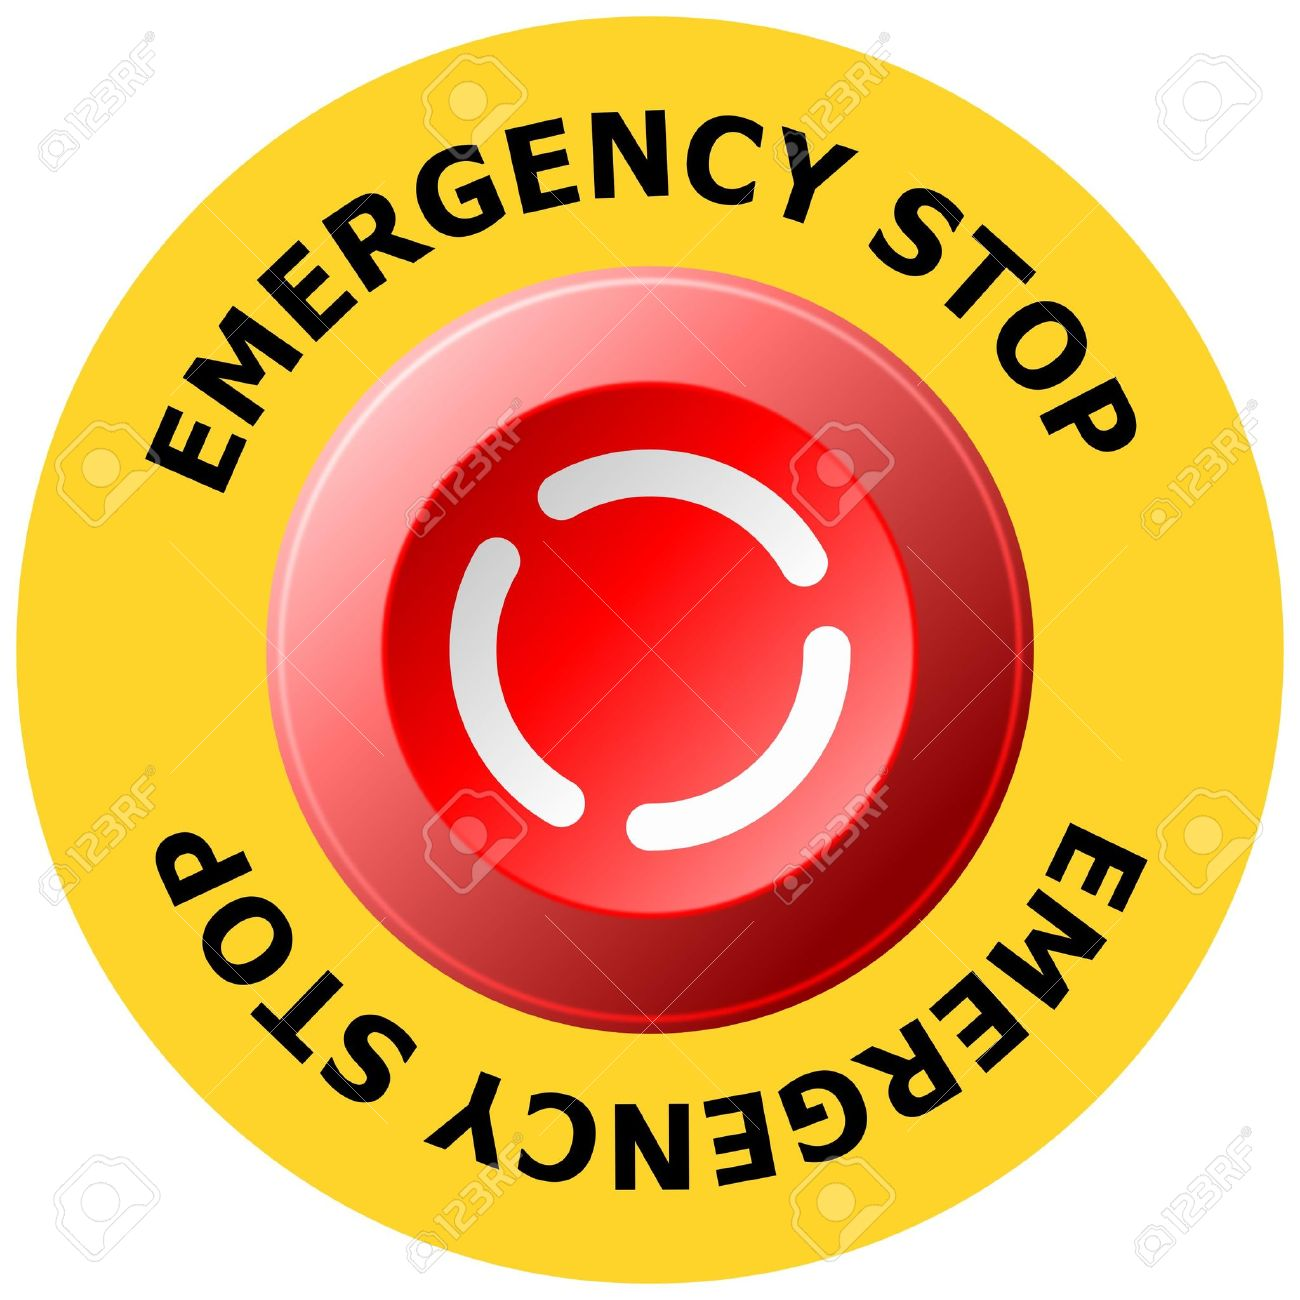 Emergency stop icon clipart emergency off - Emergency Stop Button Stock Vector 4885251